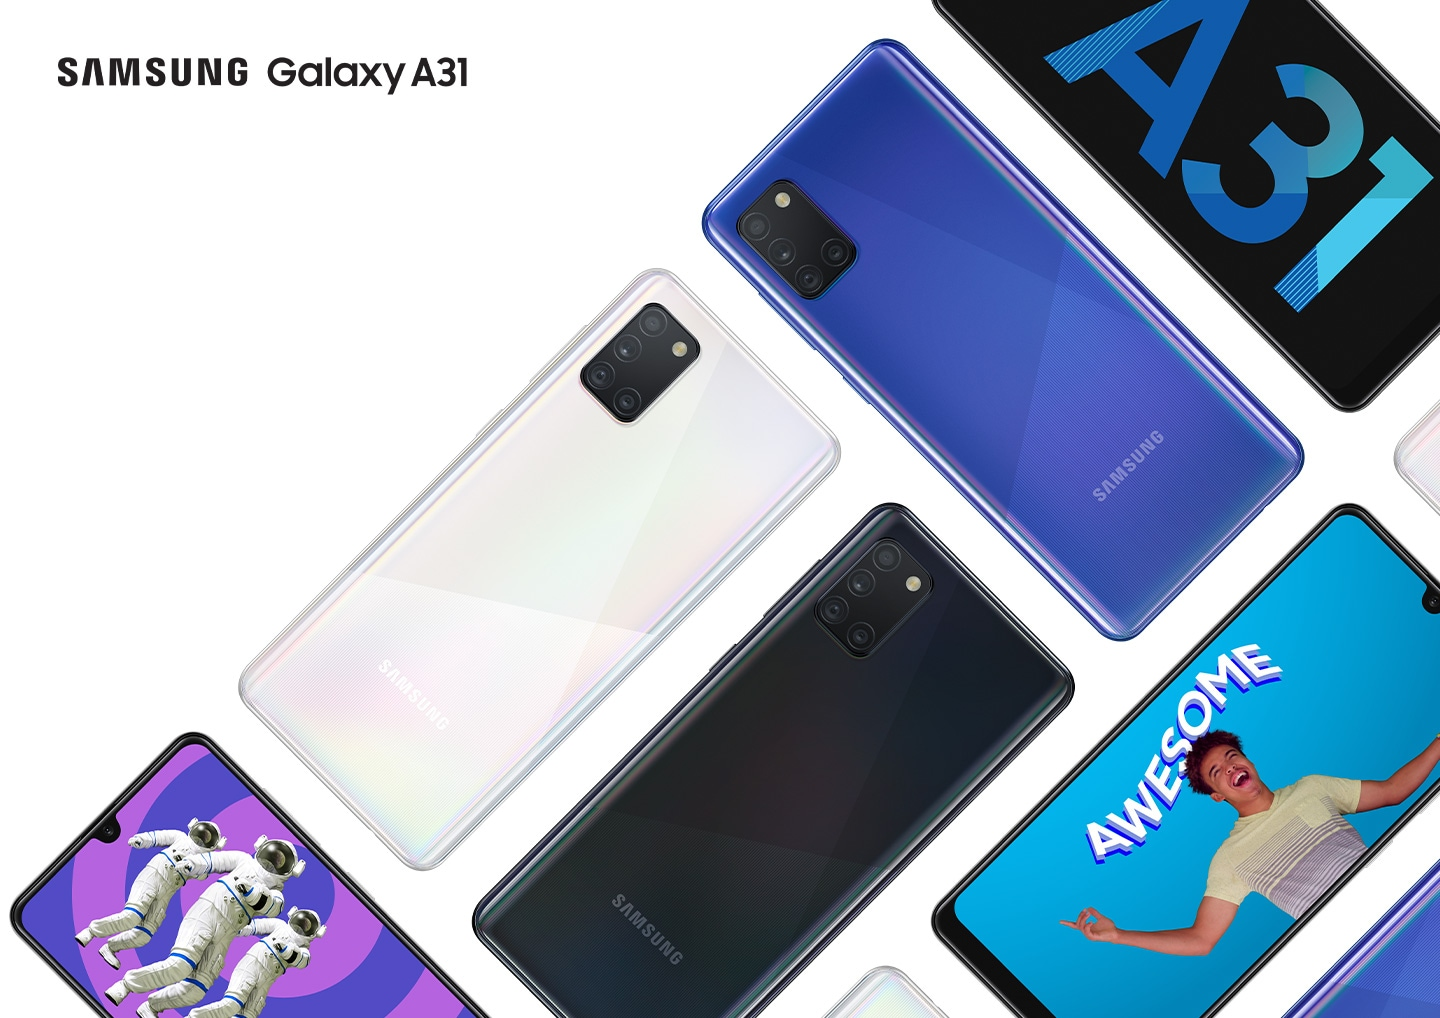 Samsung prezentuje model Galaxy A31